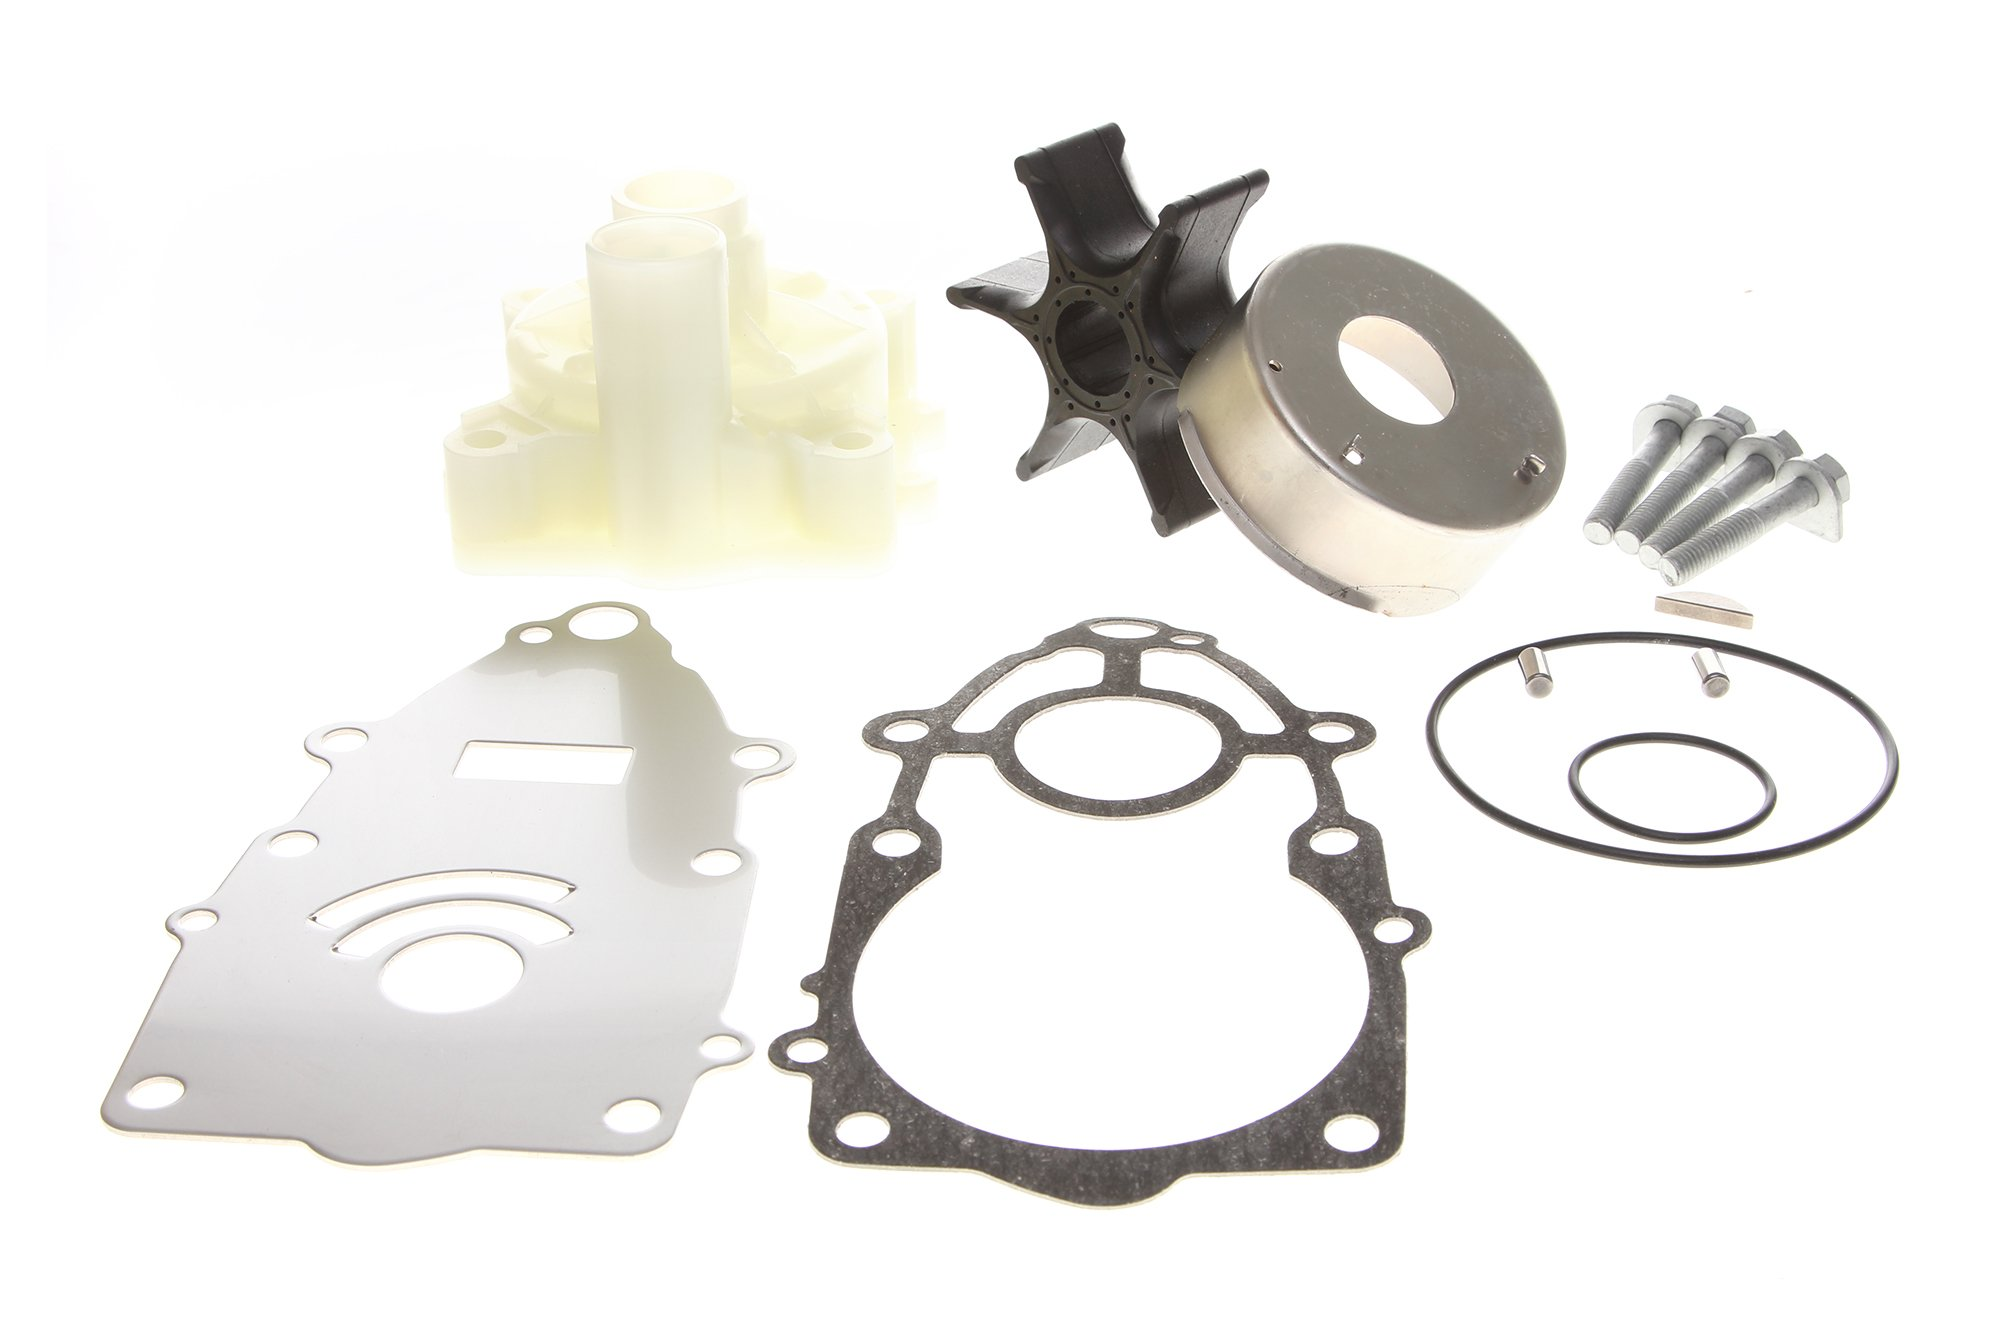 REPLACEMENTKITS.COM - Brand Fits Yamaha 225 250 300 HP F LF LZ Z 4 Stroke Water Pump Kit with Housing - by REPLACEMENTKITS.COM